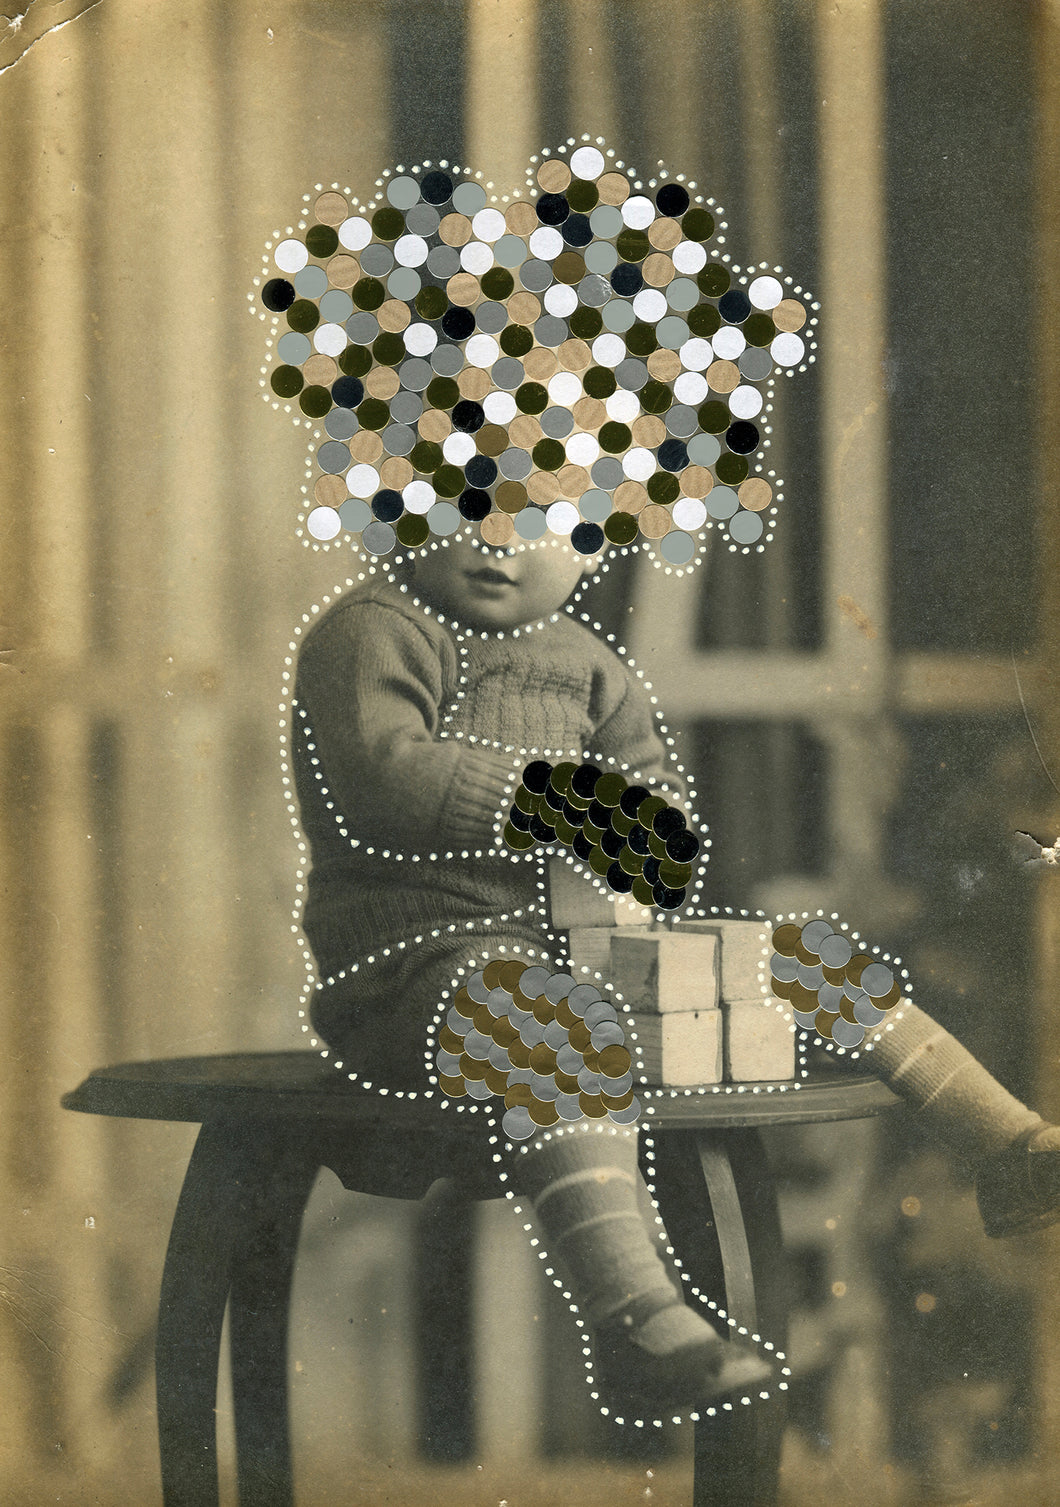 Altered Vintage Black And White Baby Boy Studio Portrait Manipulated With Stickers - Naomi Vona Art